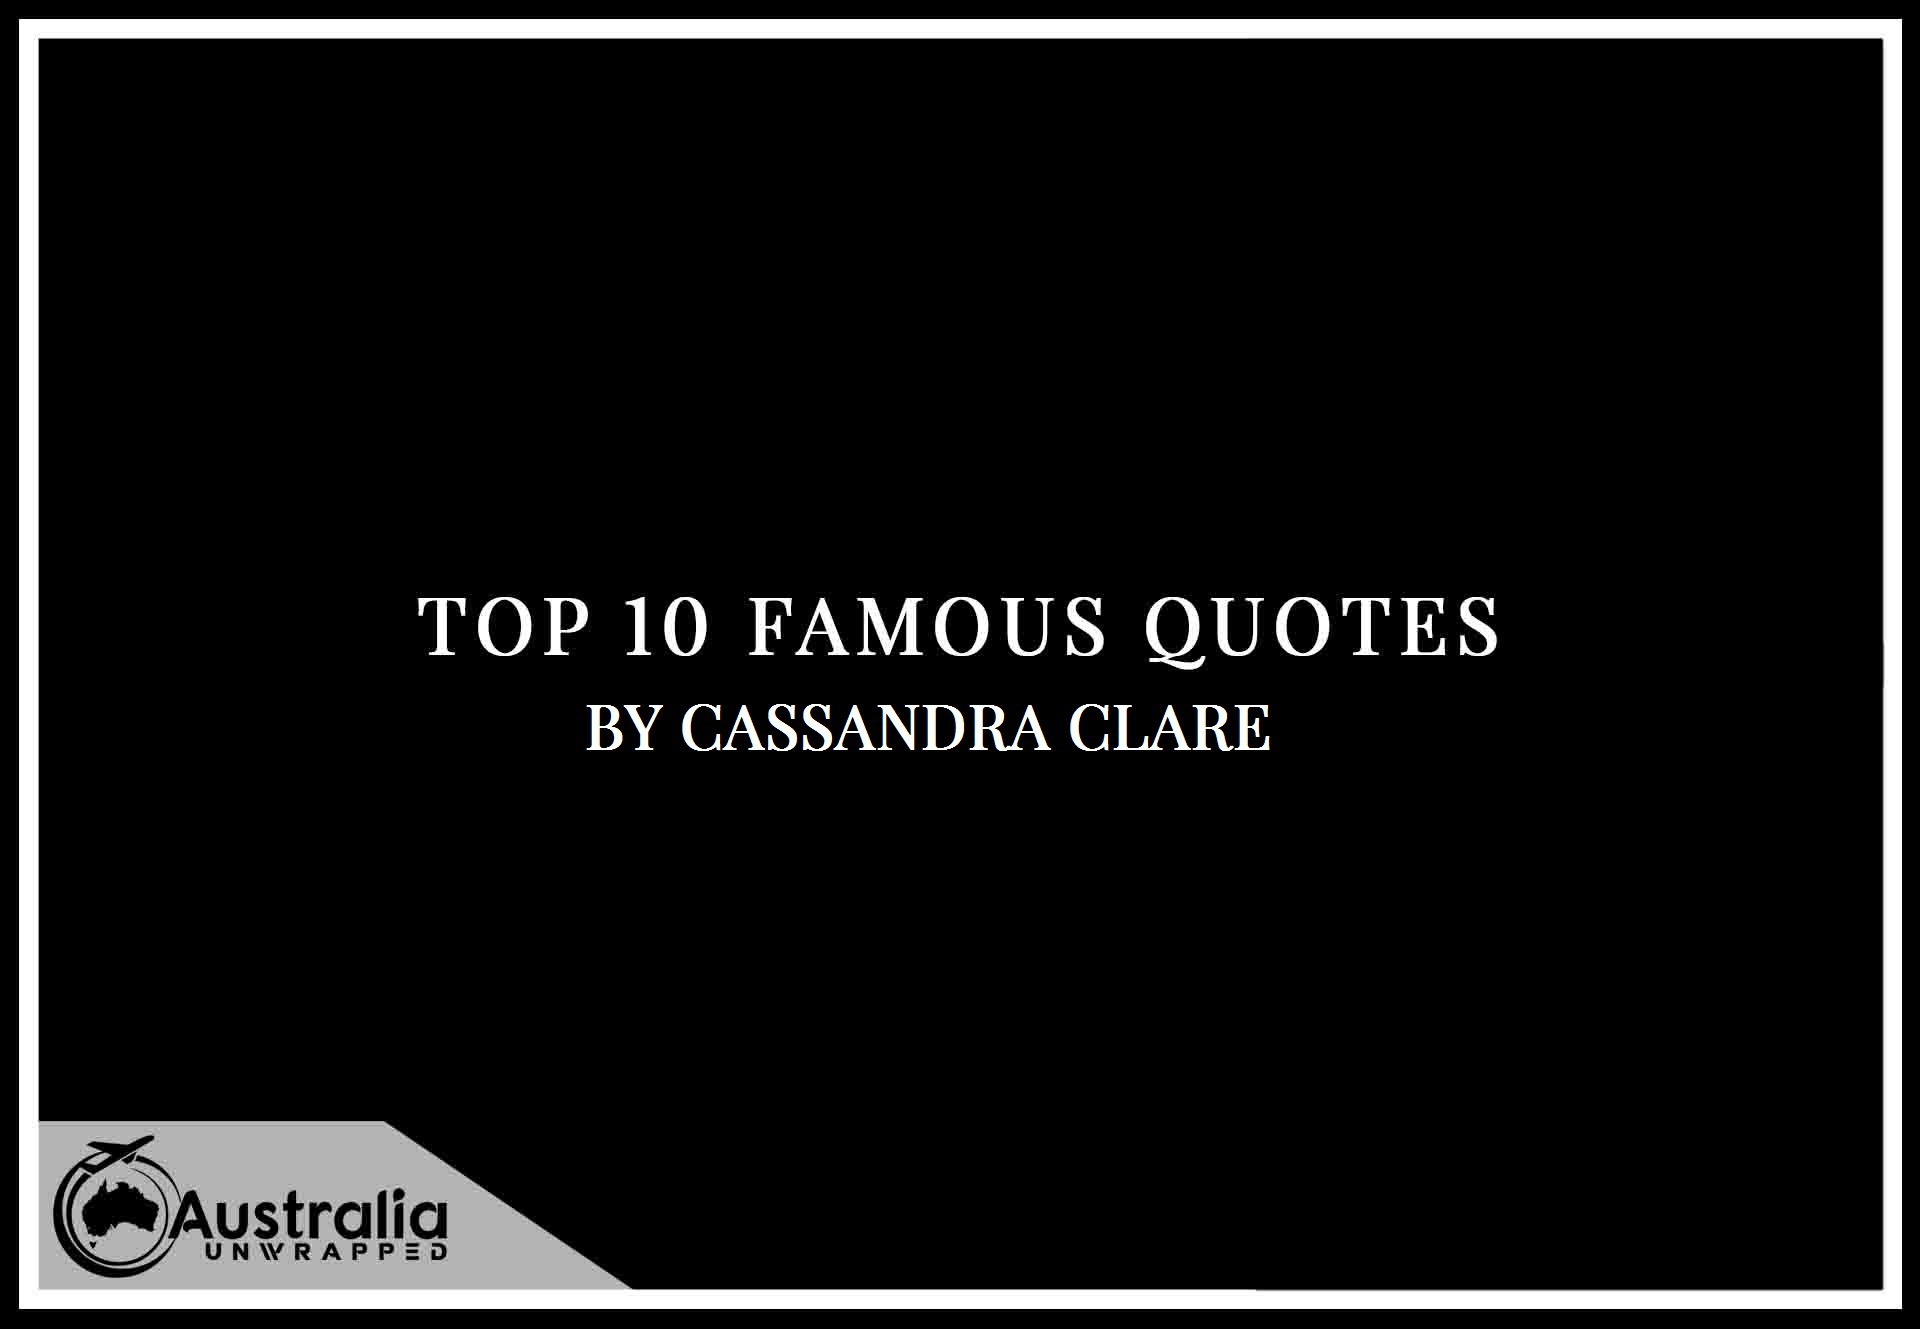 Cassandra Clare's Top 10 Popular and Famous Quotes